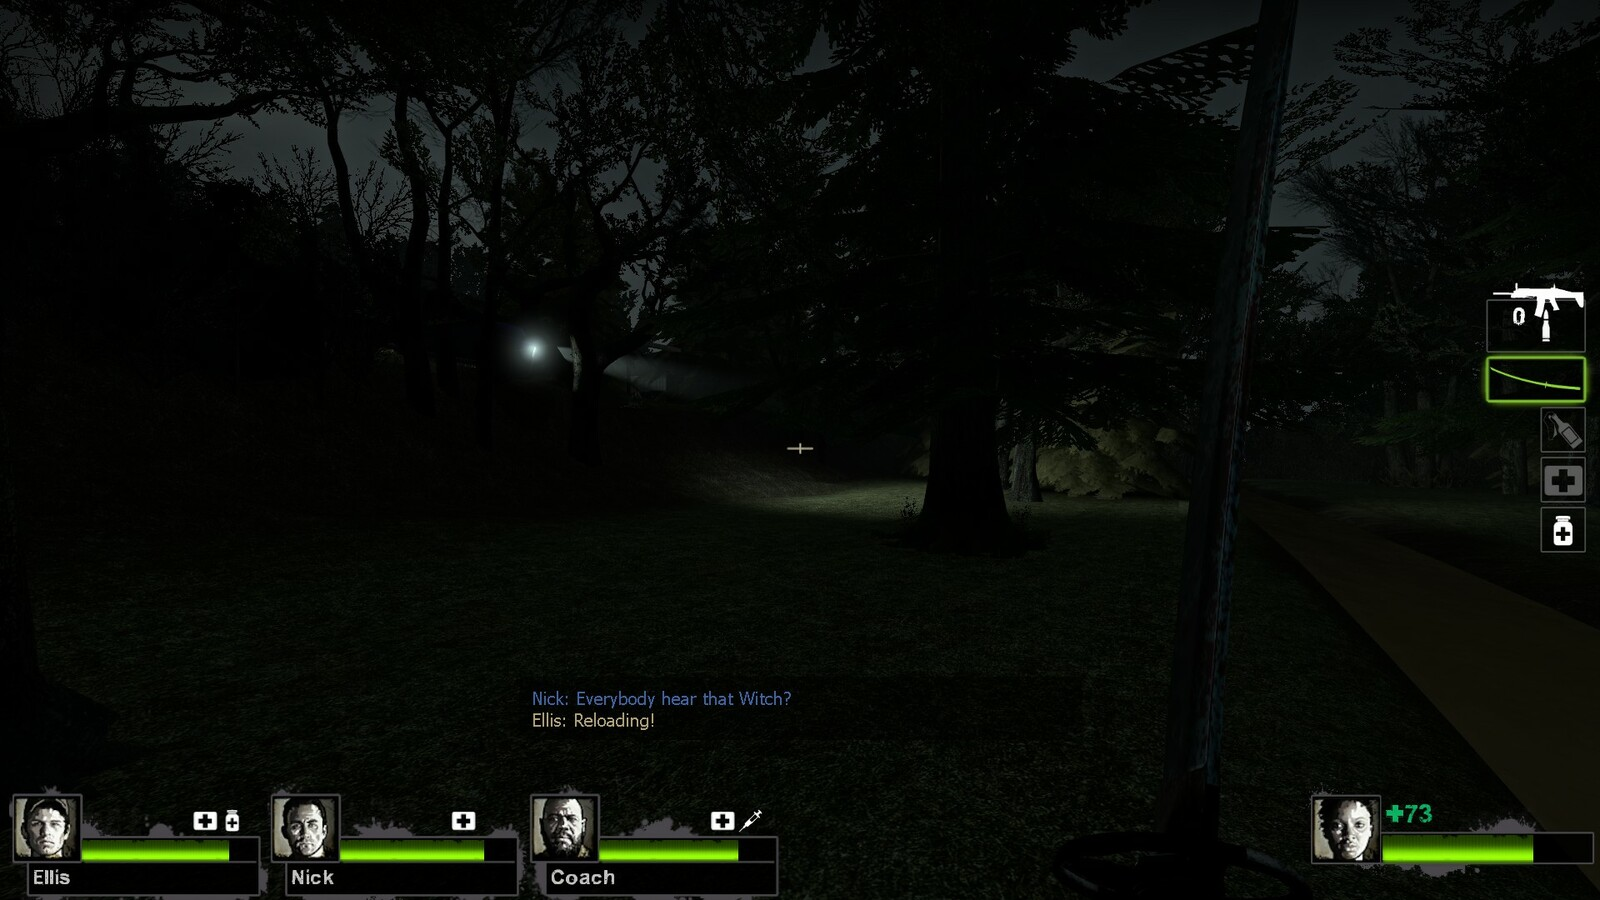 Once players are out of the sewers they will be guided to the safe house with light.